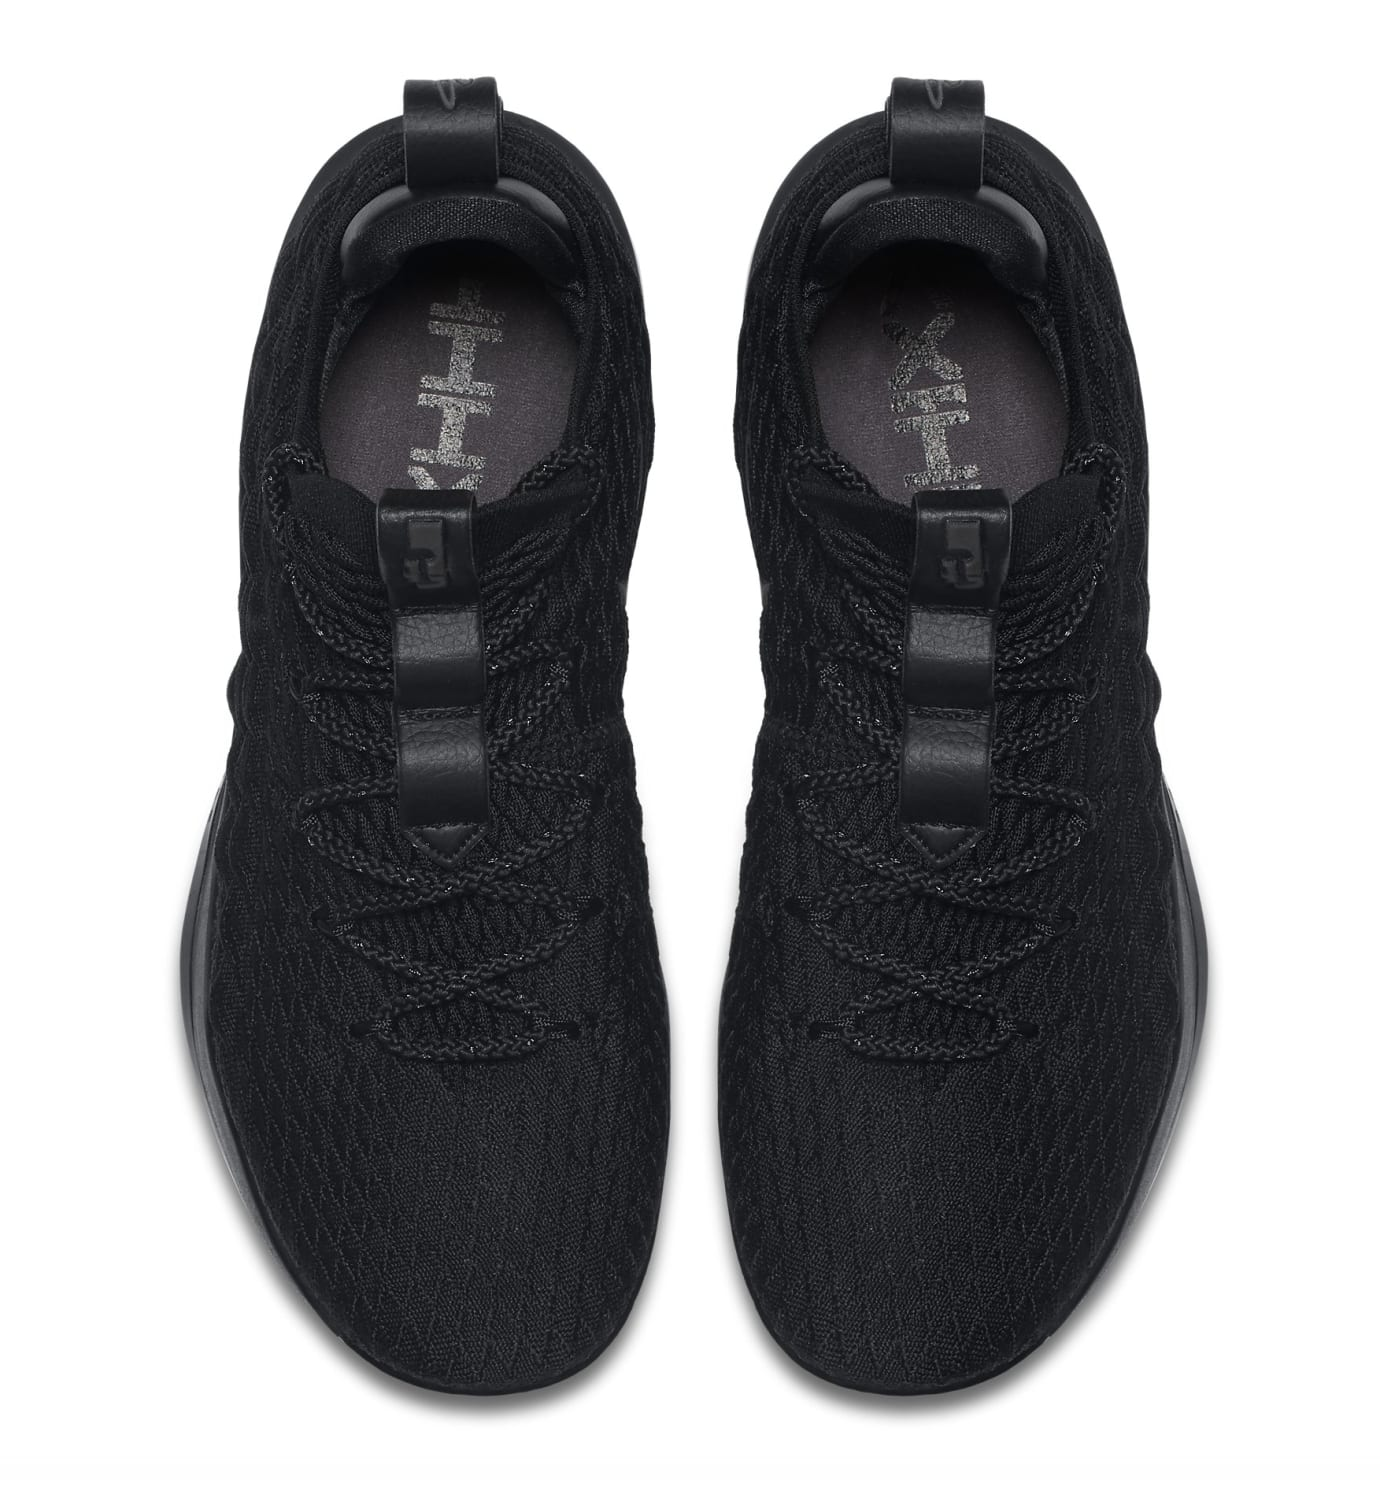 quality design db6e4 1855c Nike LeBron 15 Low 'Triple Black' Release Date Aug. 2018 ...